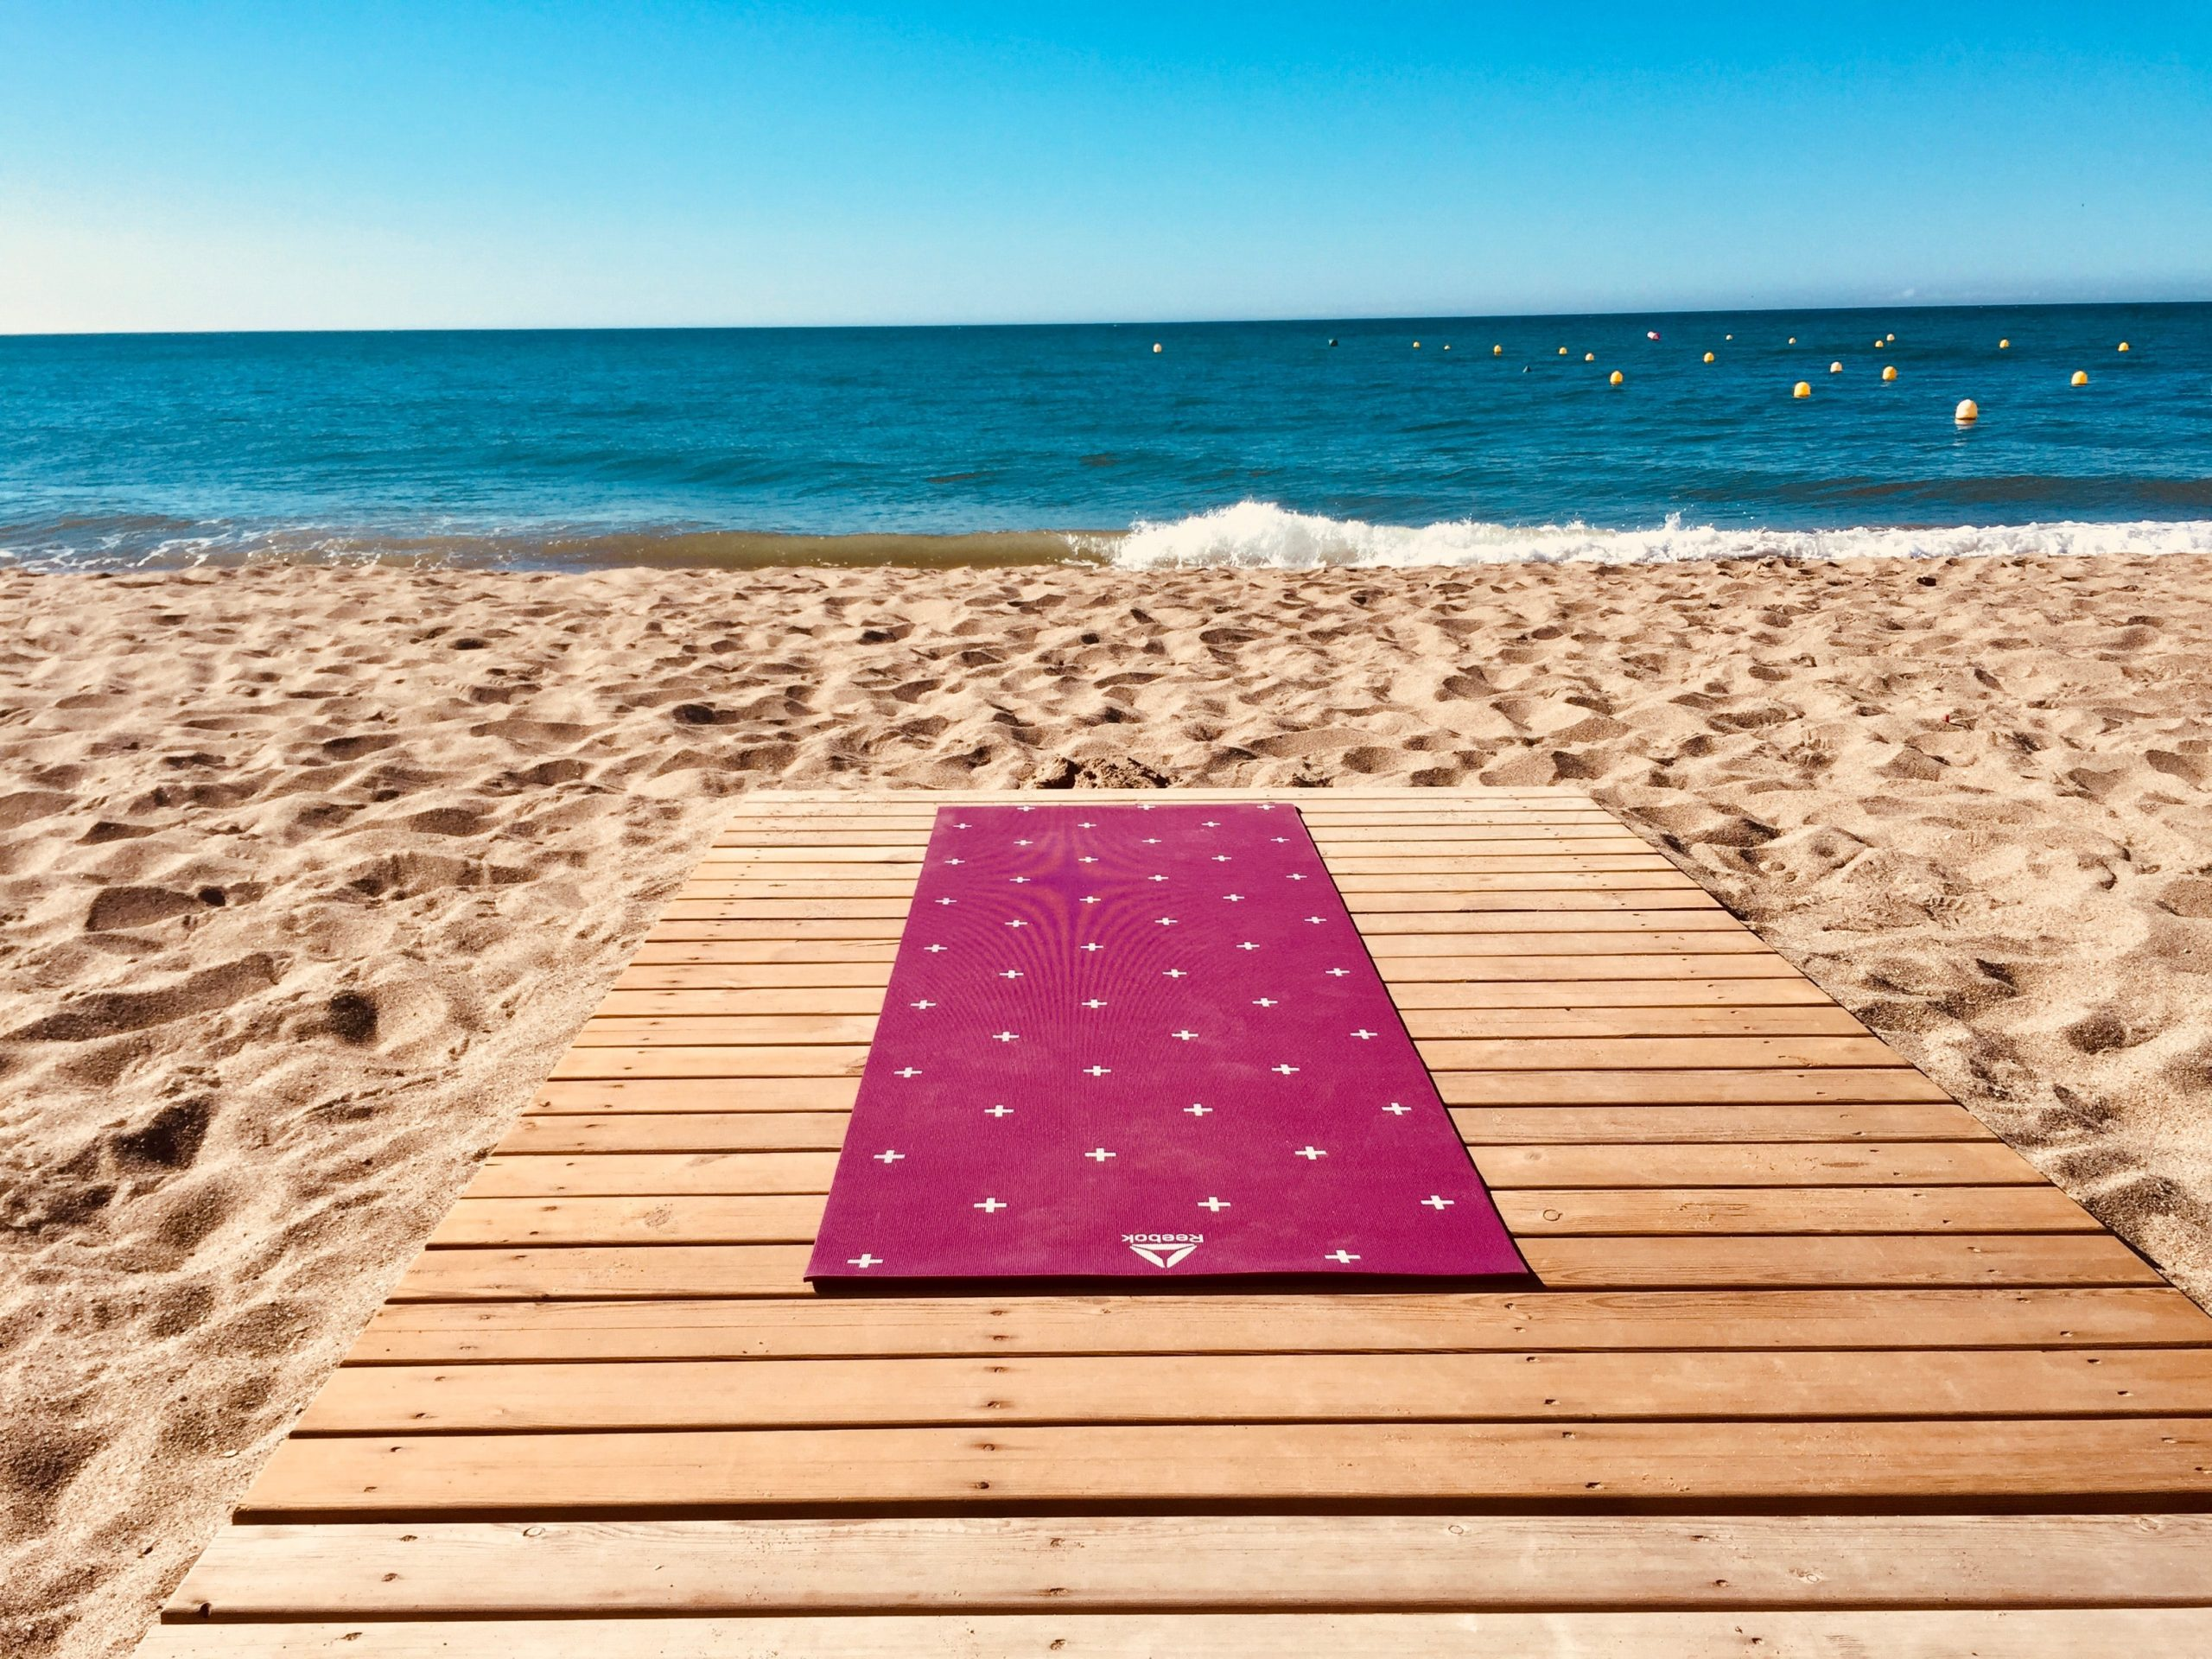 Sparkling European holidays Bend your troubles away with a beachside yoga sesh on the Costa del Sol in Spain.